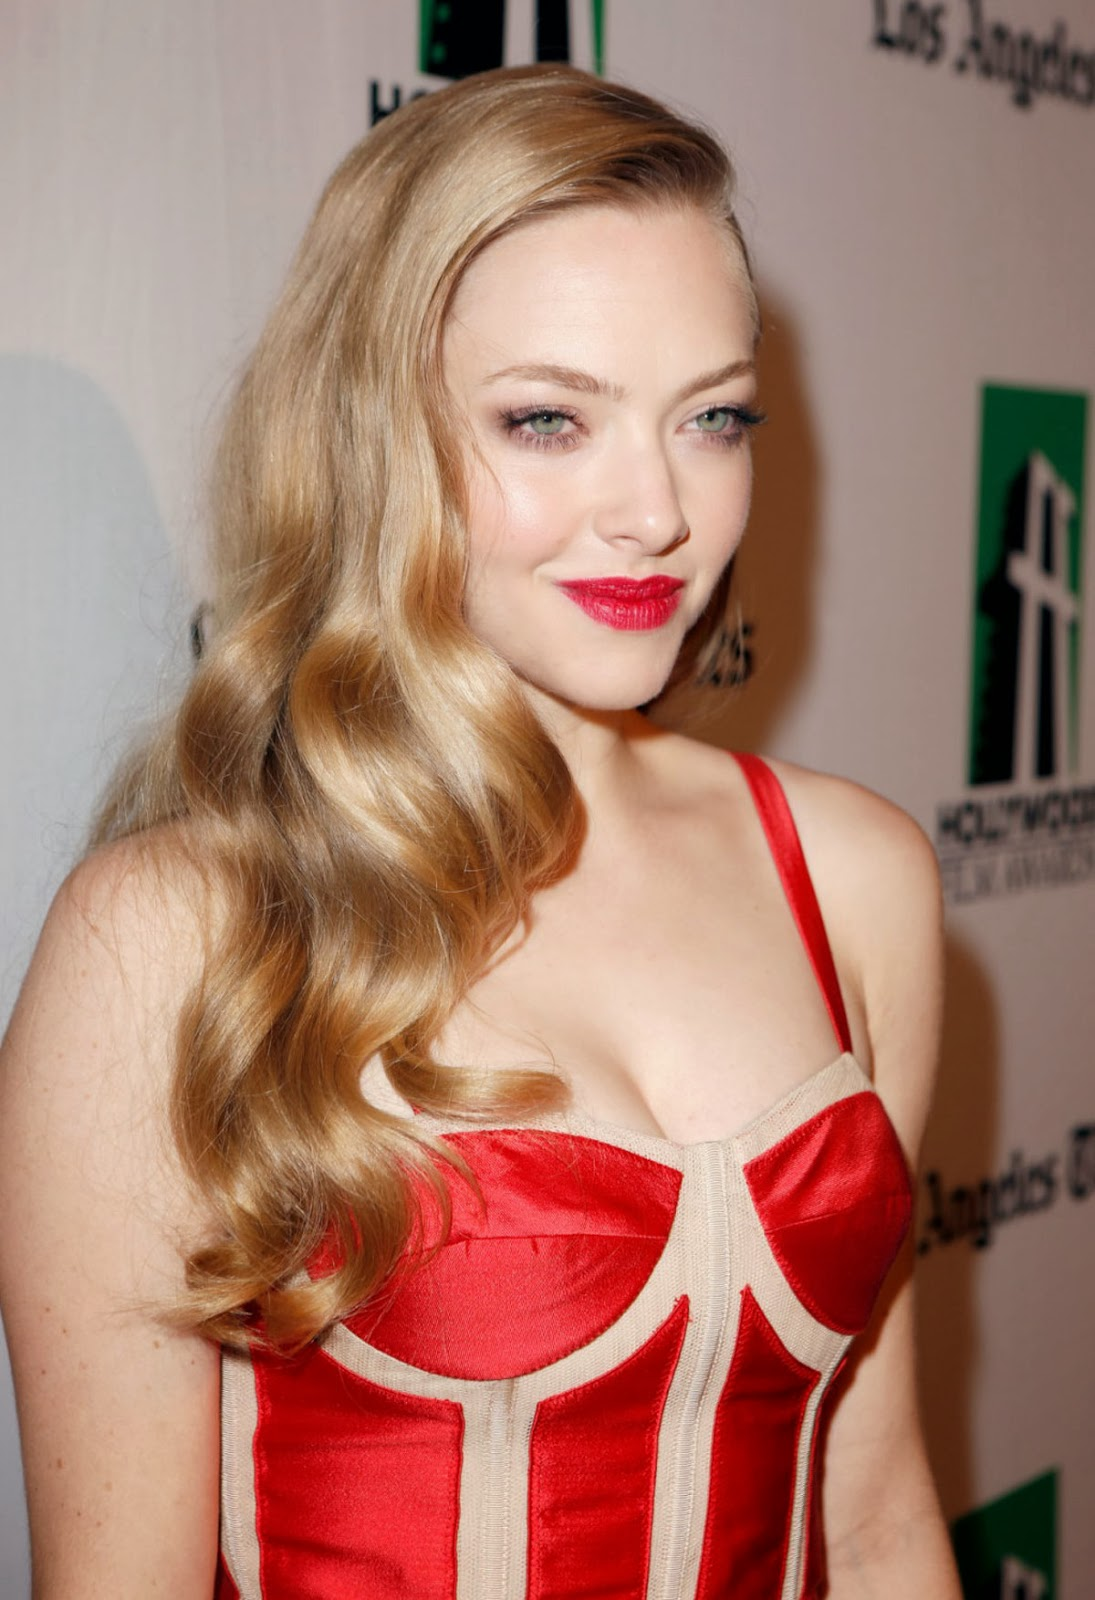 Amanda Seyfried Plastic Surgery Before and After Breast Implants and ... Amanda Seyfried